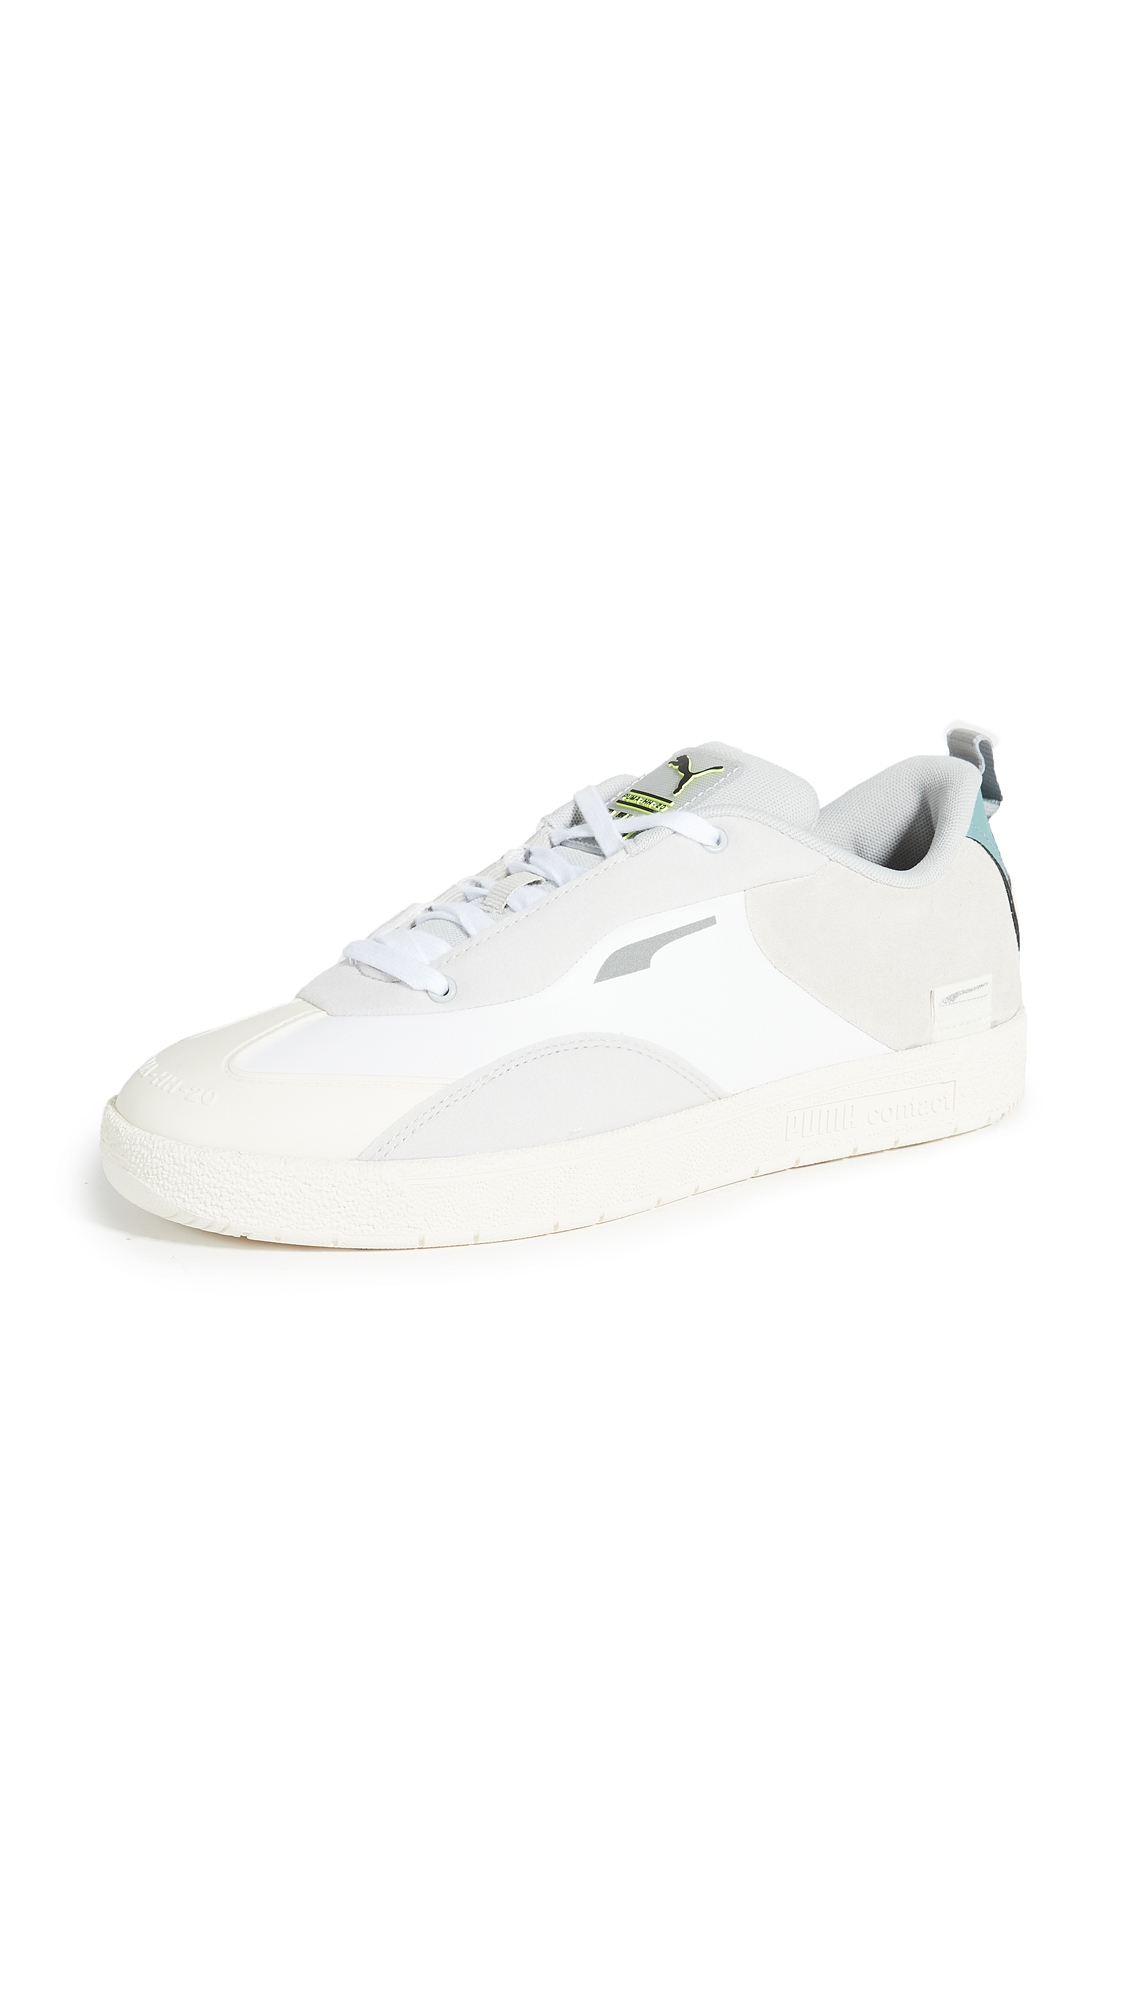 Oslo-City Helly Hansen Sneakers